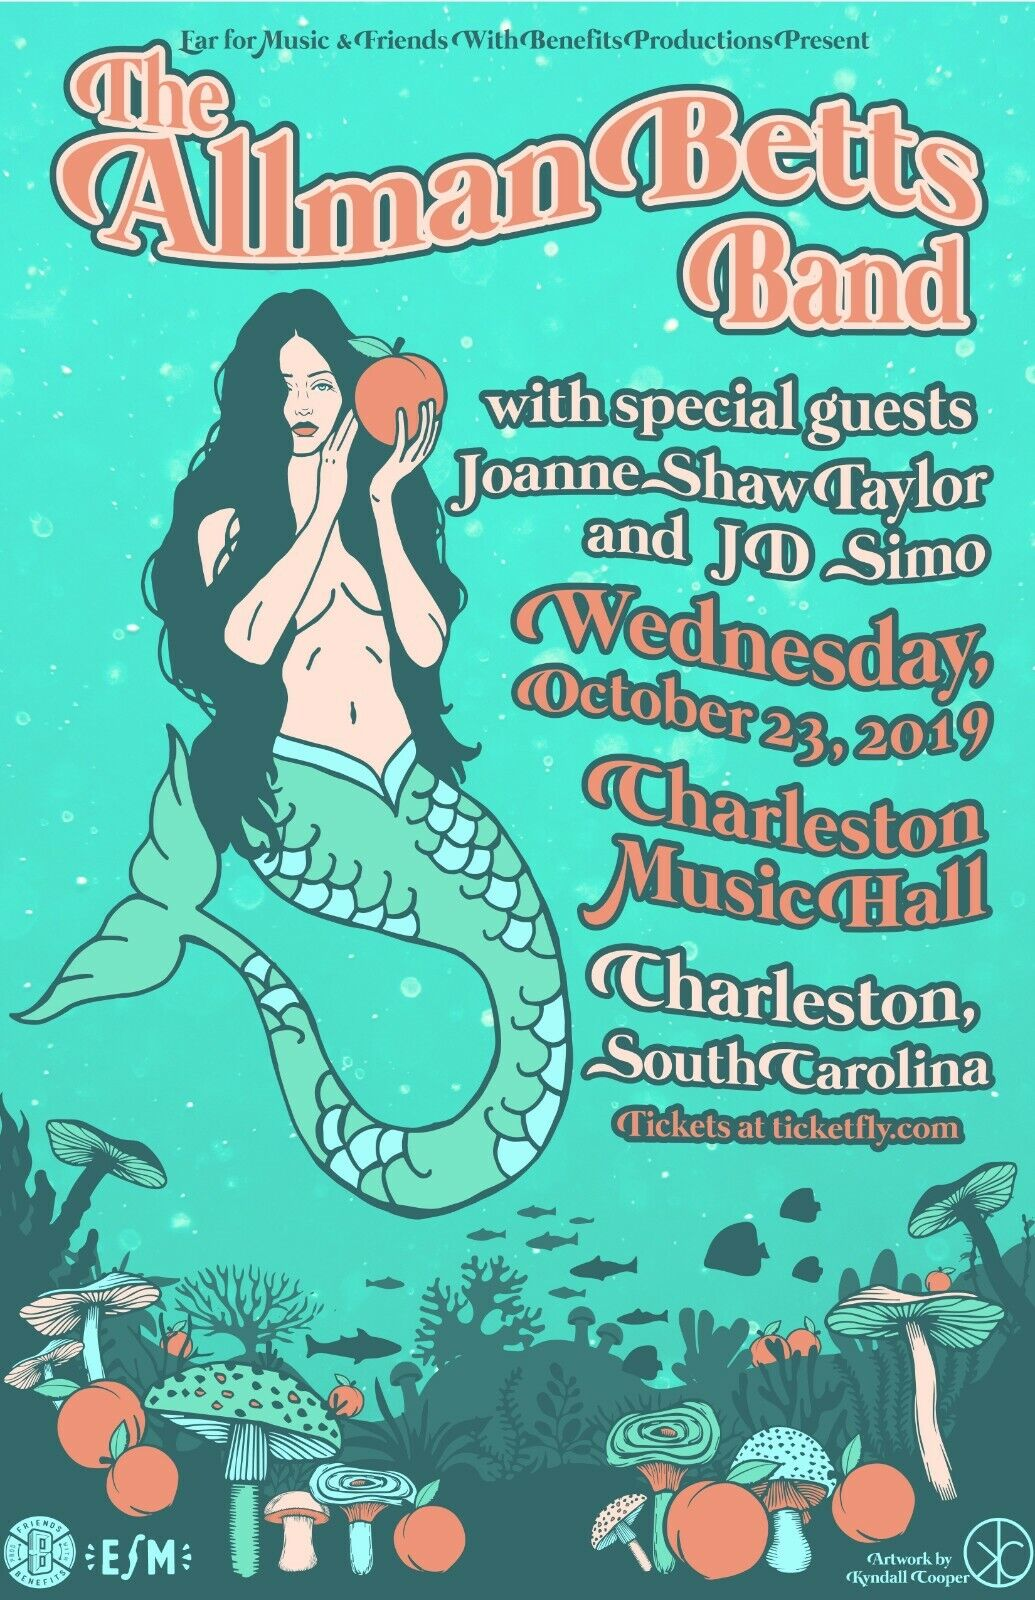 ALLMAN BETTS BAND 2019 CHARLESTON, SC CONCERT TOUR POSTER - Southern Rock Music - $10.99